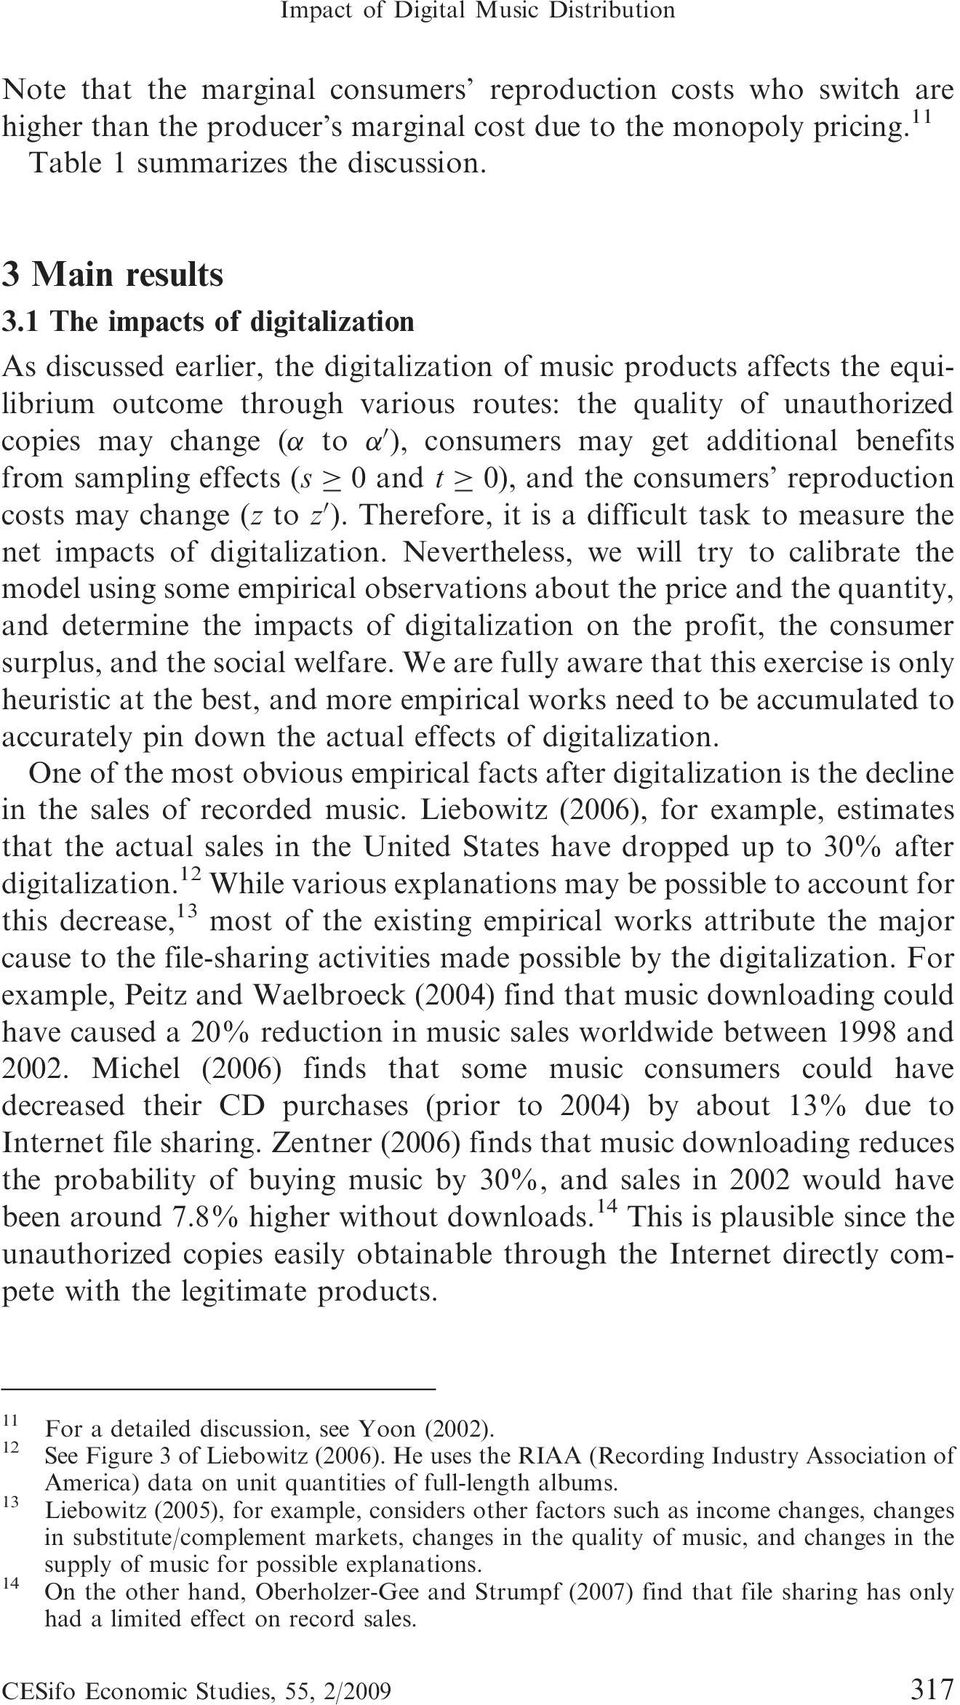 1 The impacts of digitalization As discussed earlier, the digitalization of music products affects the equilibrium outcome through various routes: the quality of unauthorized copies may change ( to 0